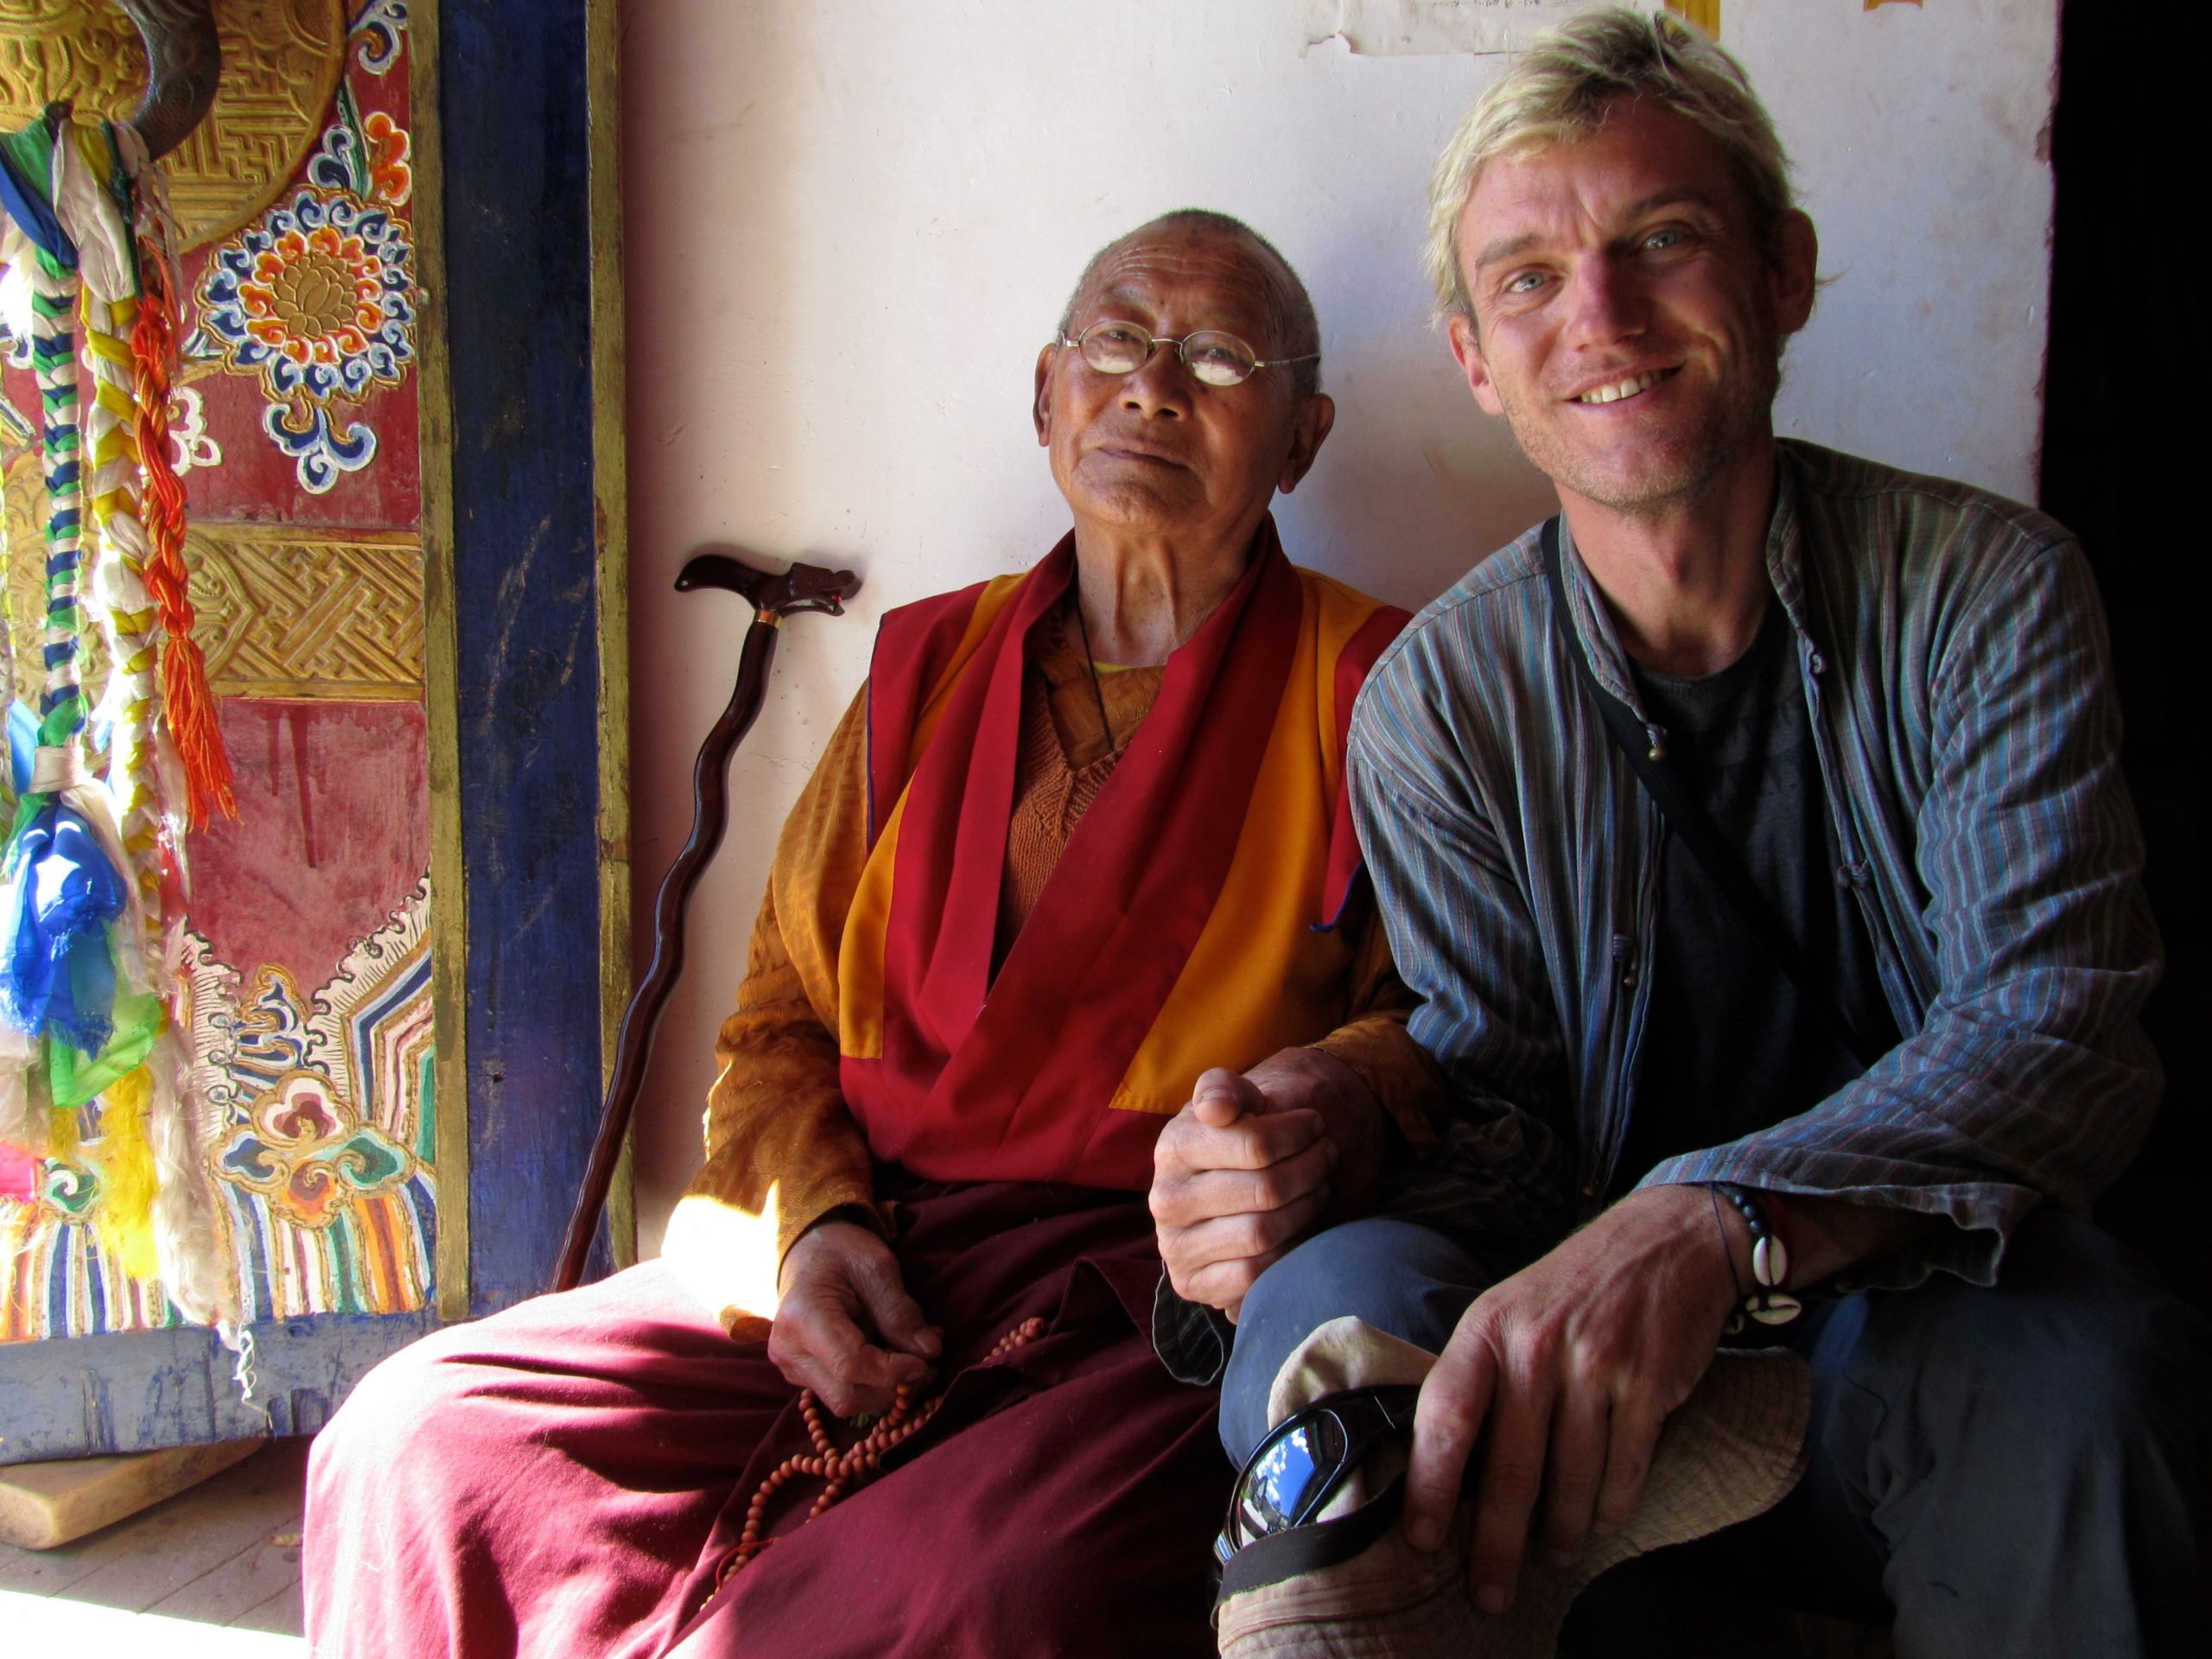 With the heartfull caretaker at Ghanze Gompa, Kham